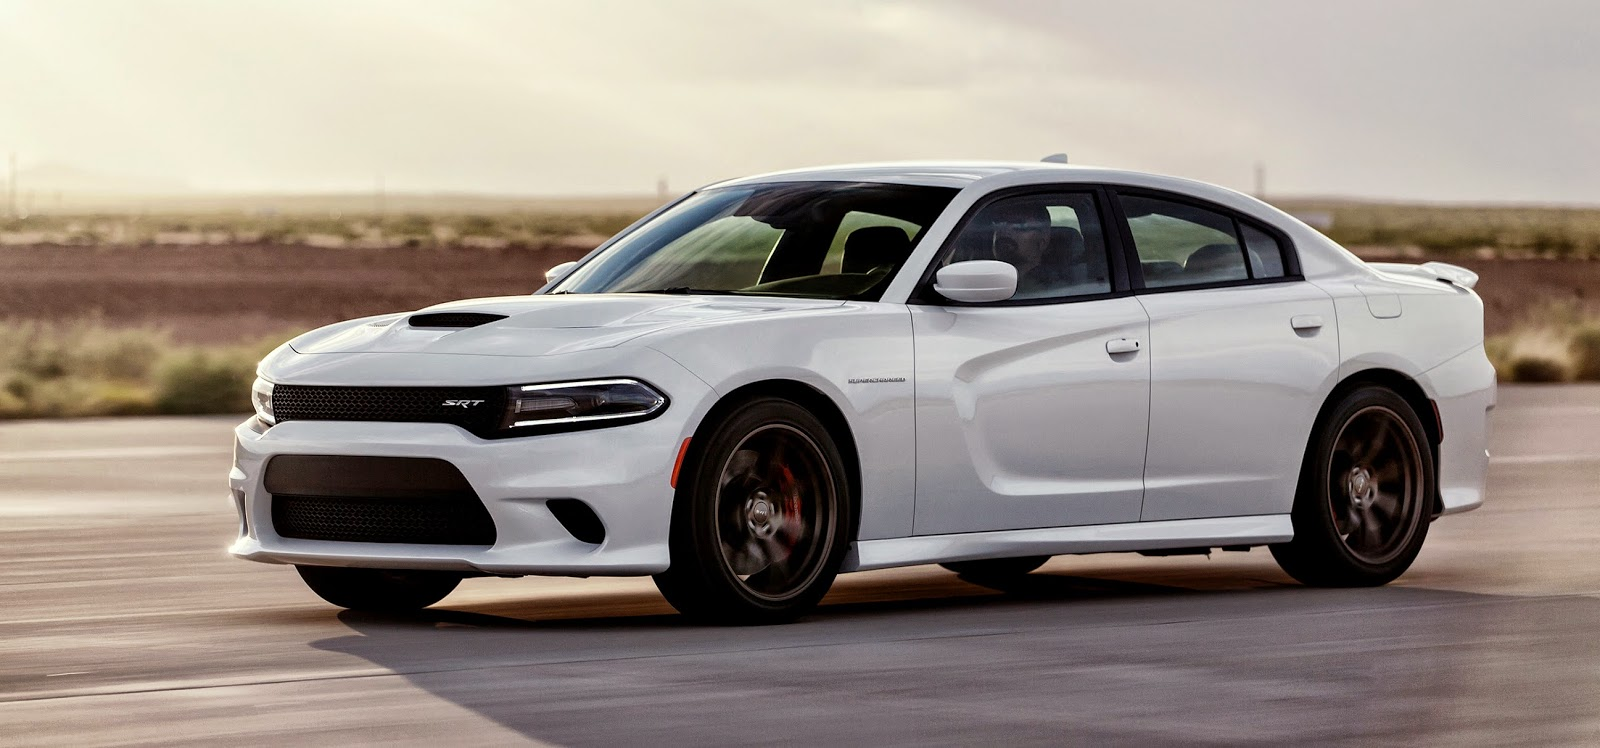 Uautoknow Dodge Injects Speed And Power Into New 2015 Charger